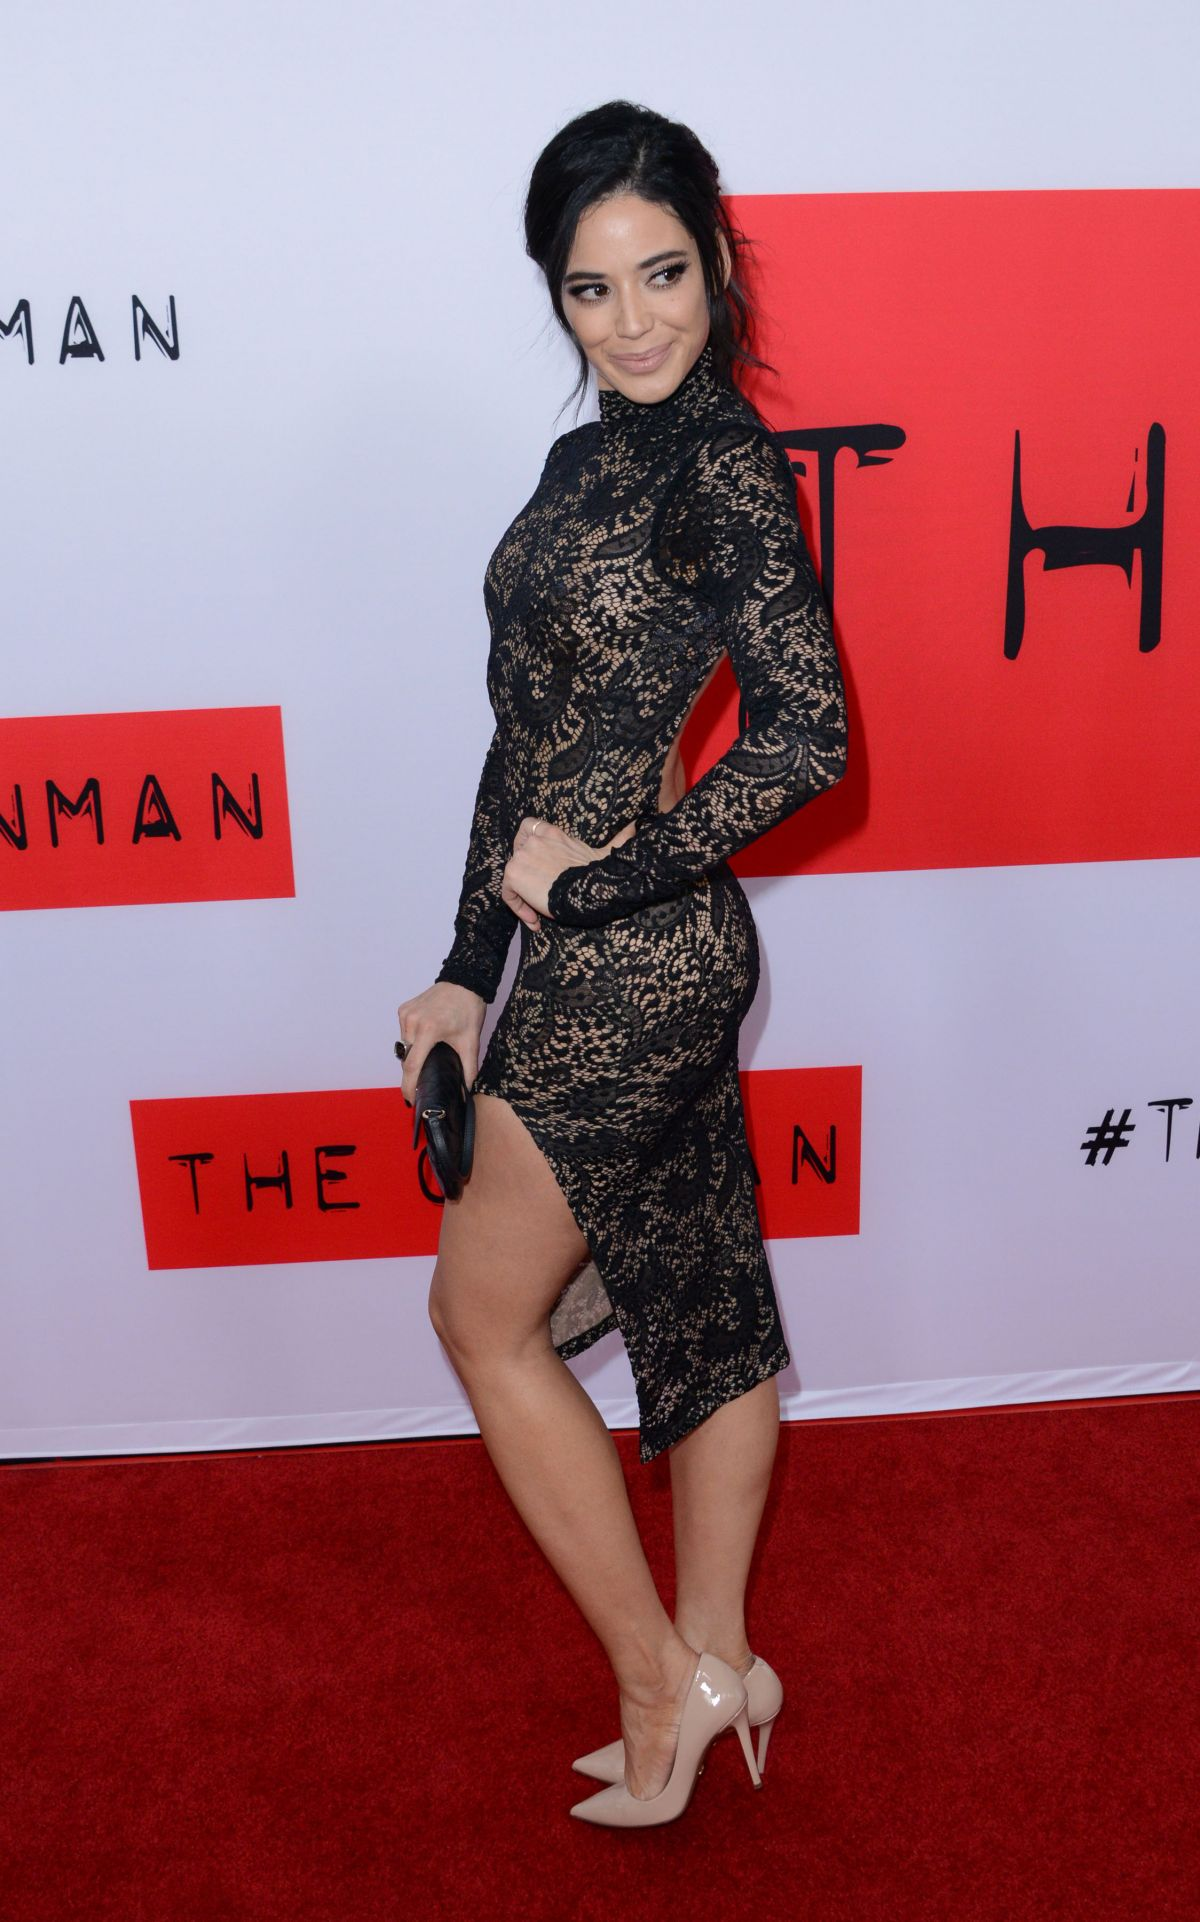 EDY GANEM at The Gunman Premiere in Los Angeles